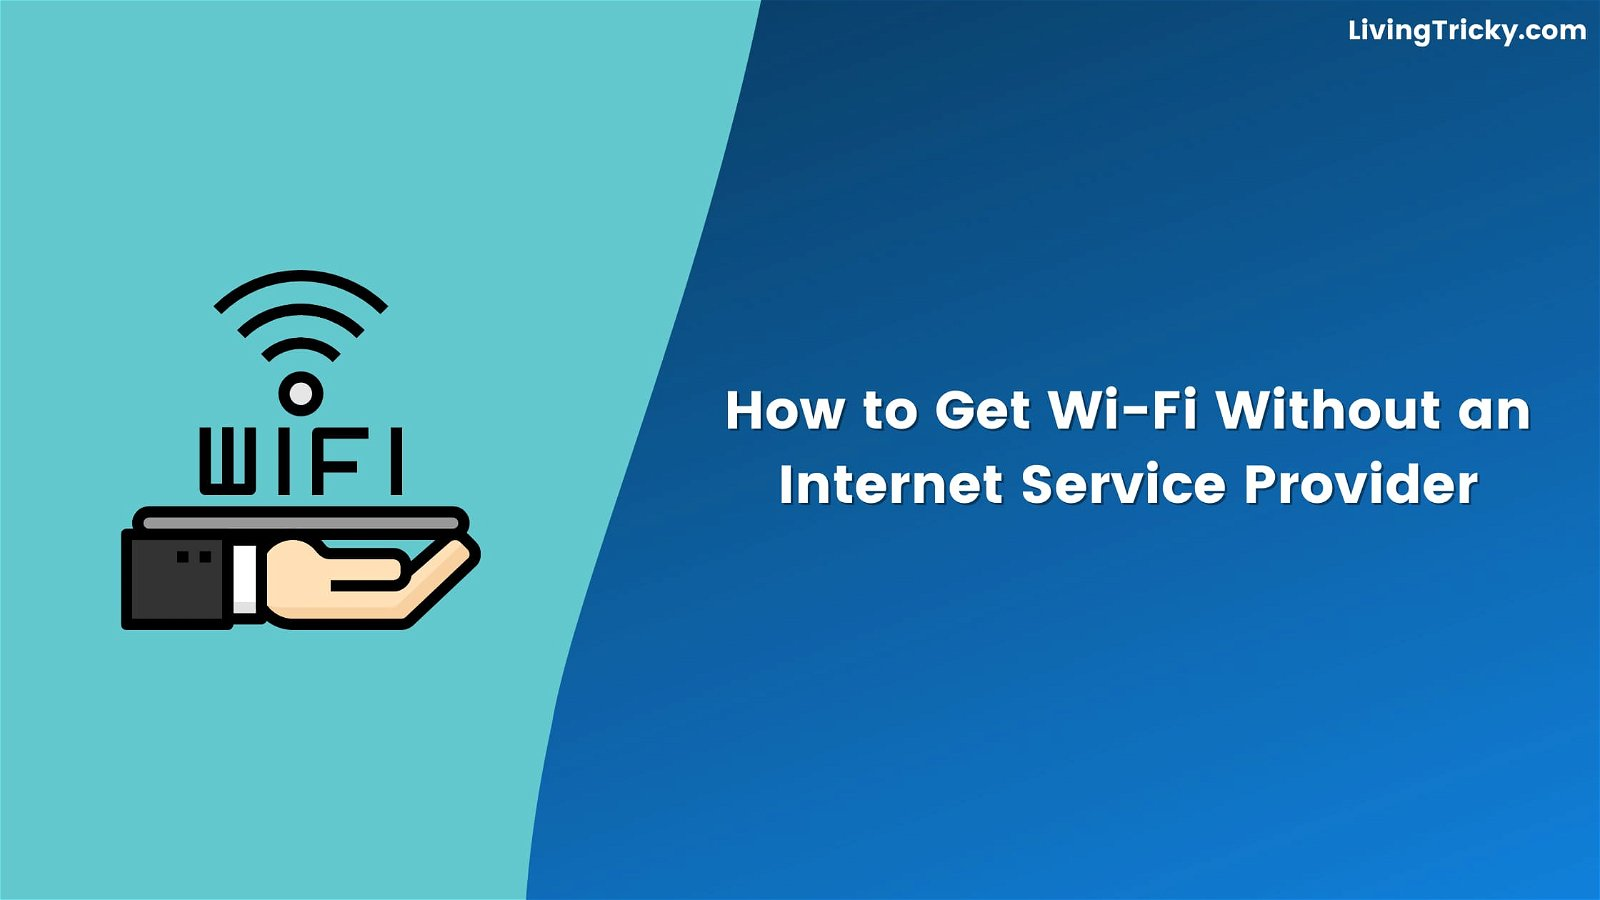 How to Get Wi-Fi Without an Internet Service Provider